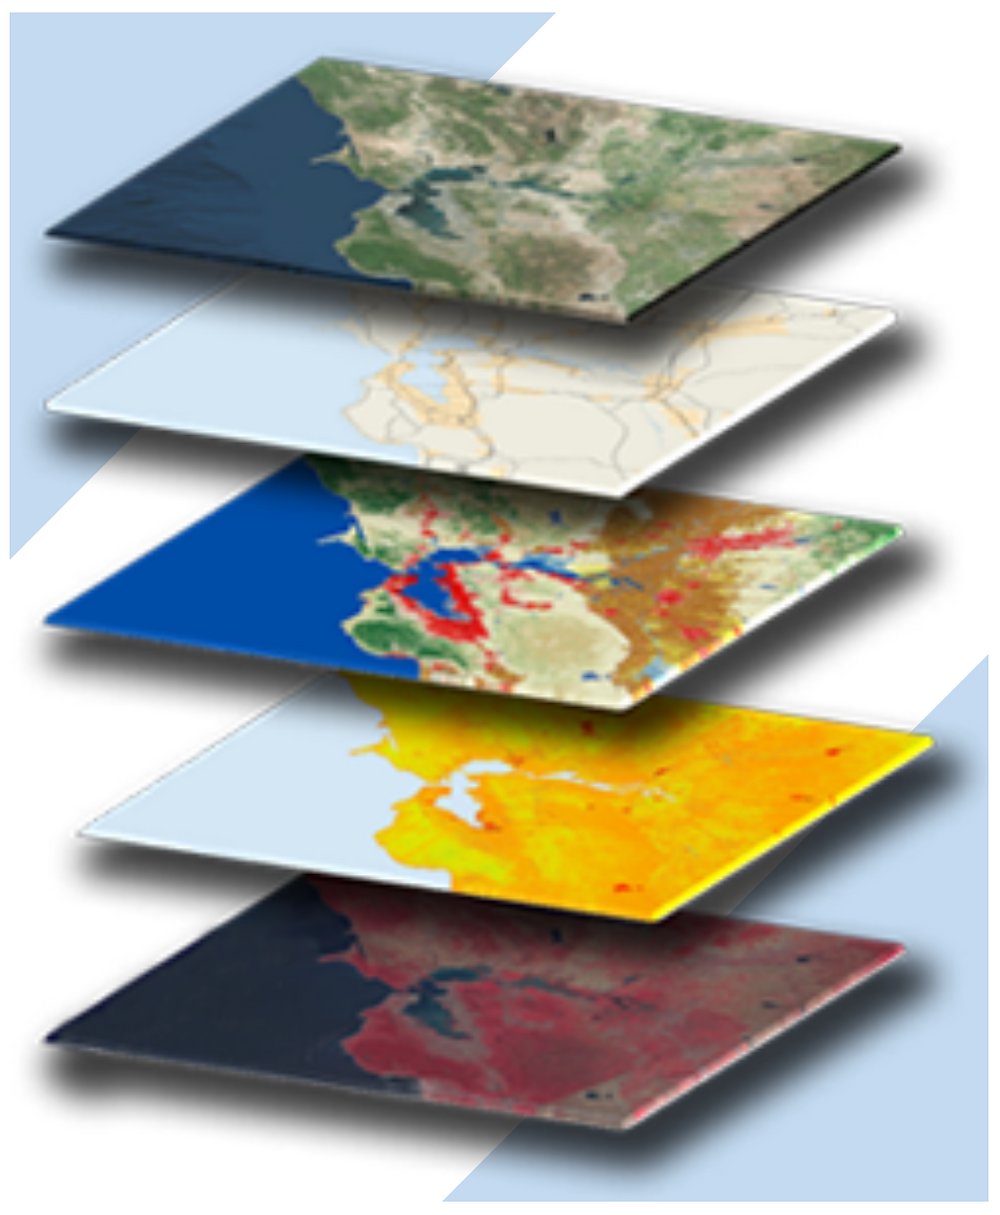 Blog post on the software solutions offered by Integrated Informatics Inc including Enterprise Services and managing Esri ArcGIS spatial data.